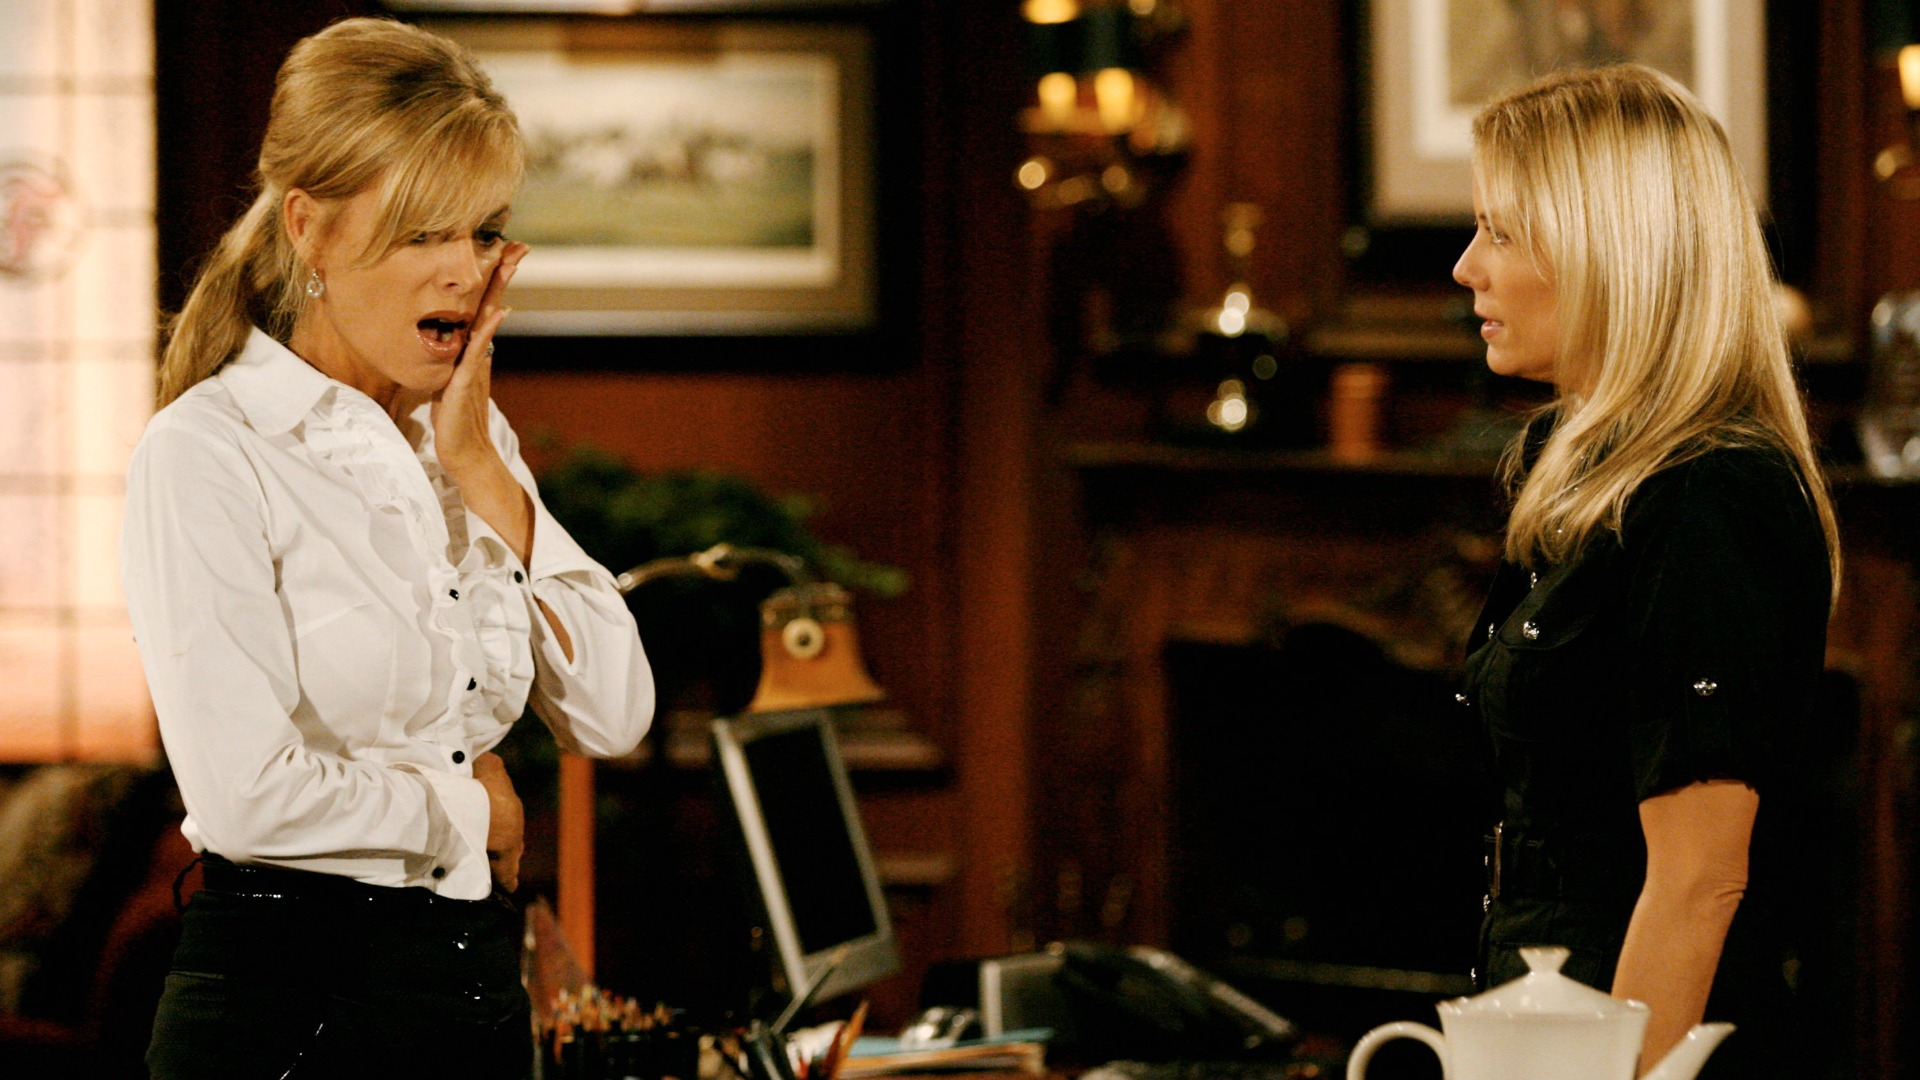 Ashley Abbott (Eileen Davidson) never saw eye to eye with Brooke Logan (Katherine Kelly Lang) during her time in Los Angeles.